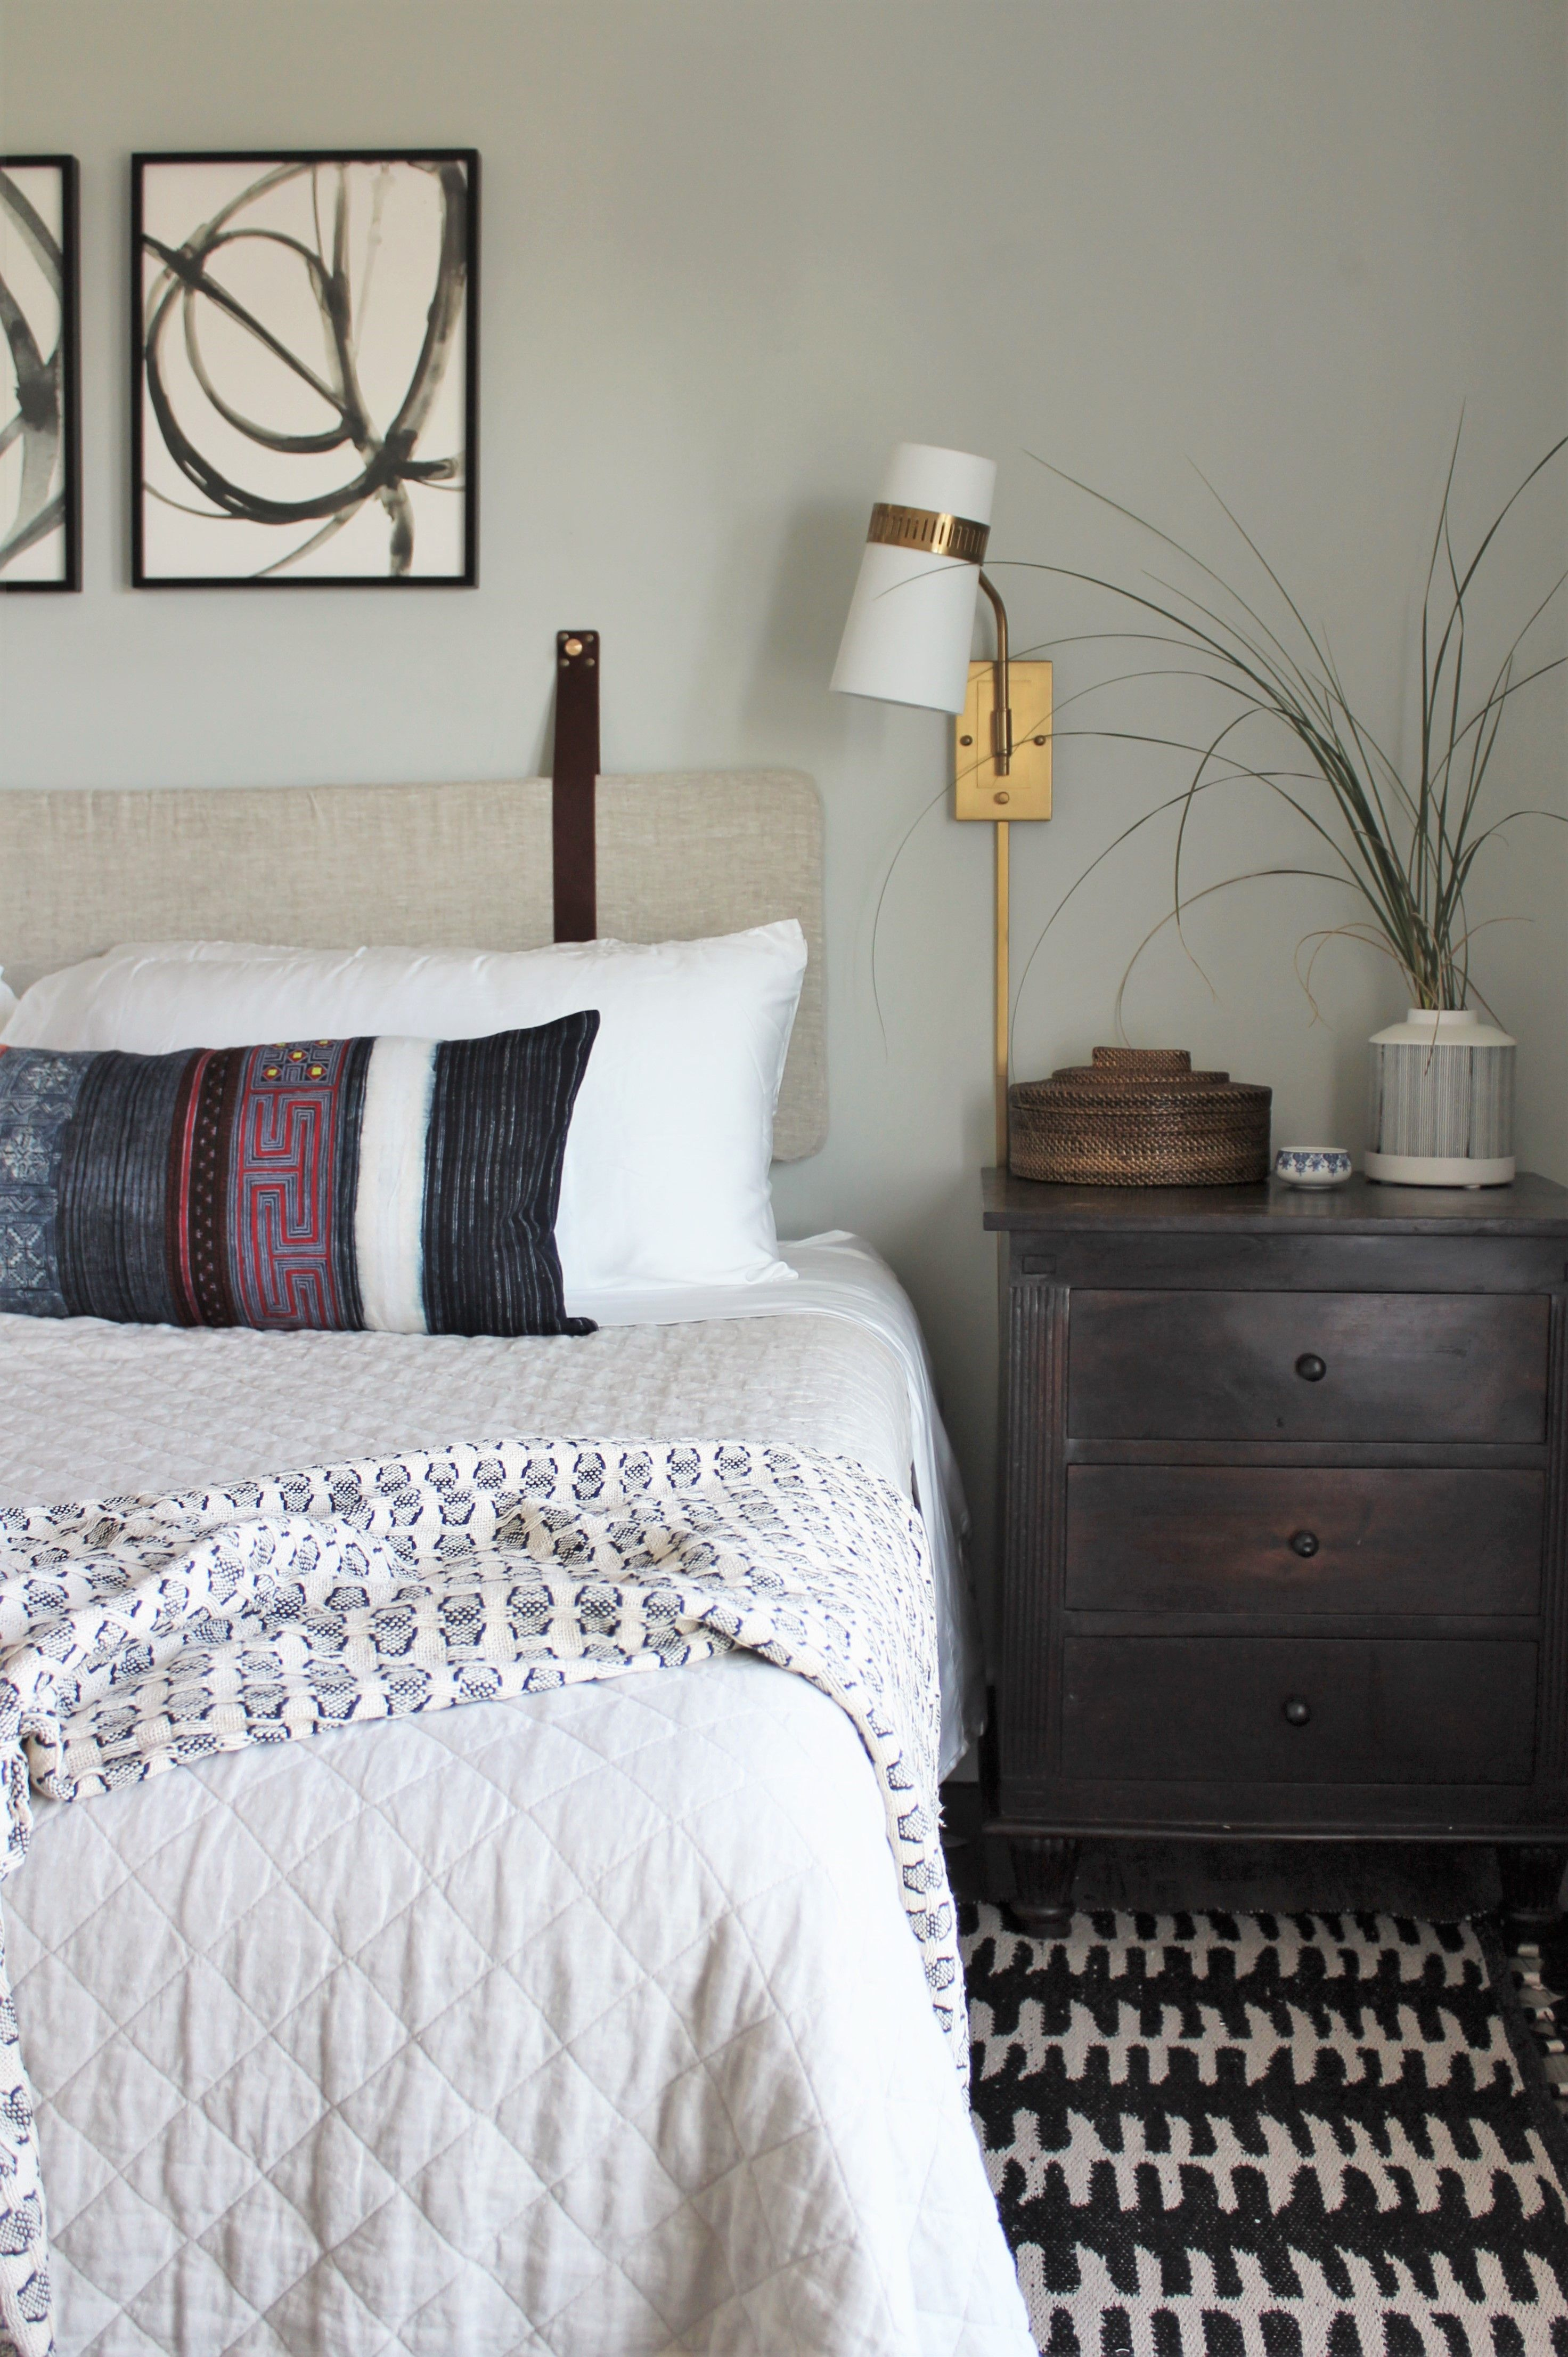 Modern Eclectic Guest Bedroom Interior Design Decor With Wall Hung Upholstered Linen Headboard With Elegant Bedroom Decor Guest Bedroom Decor Bedroom Interior